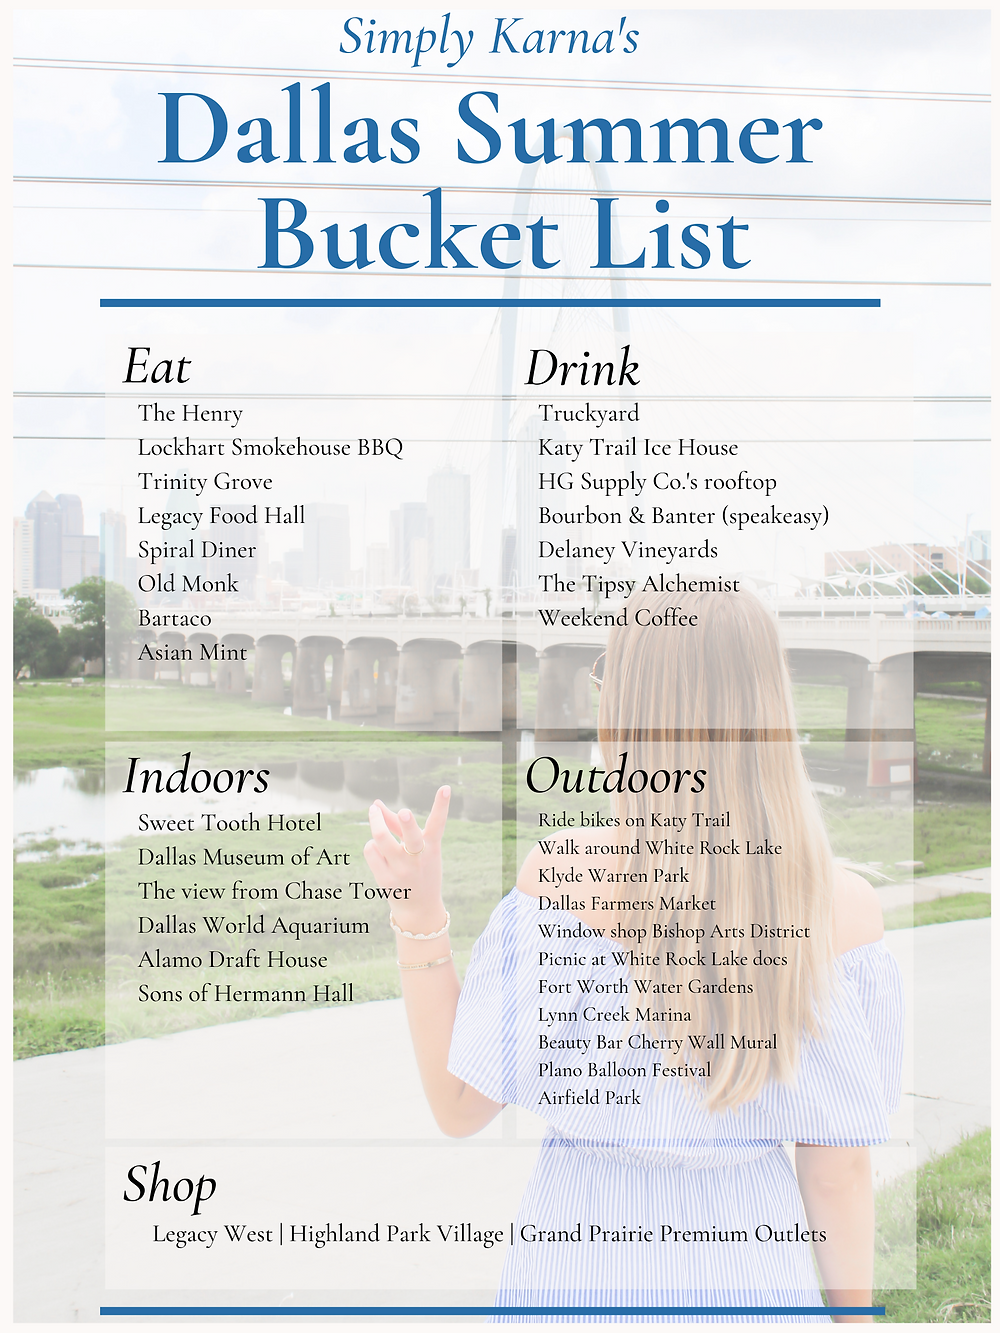 List of things to do in Dallas